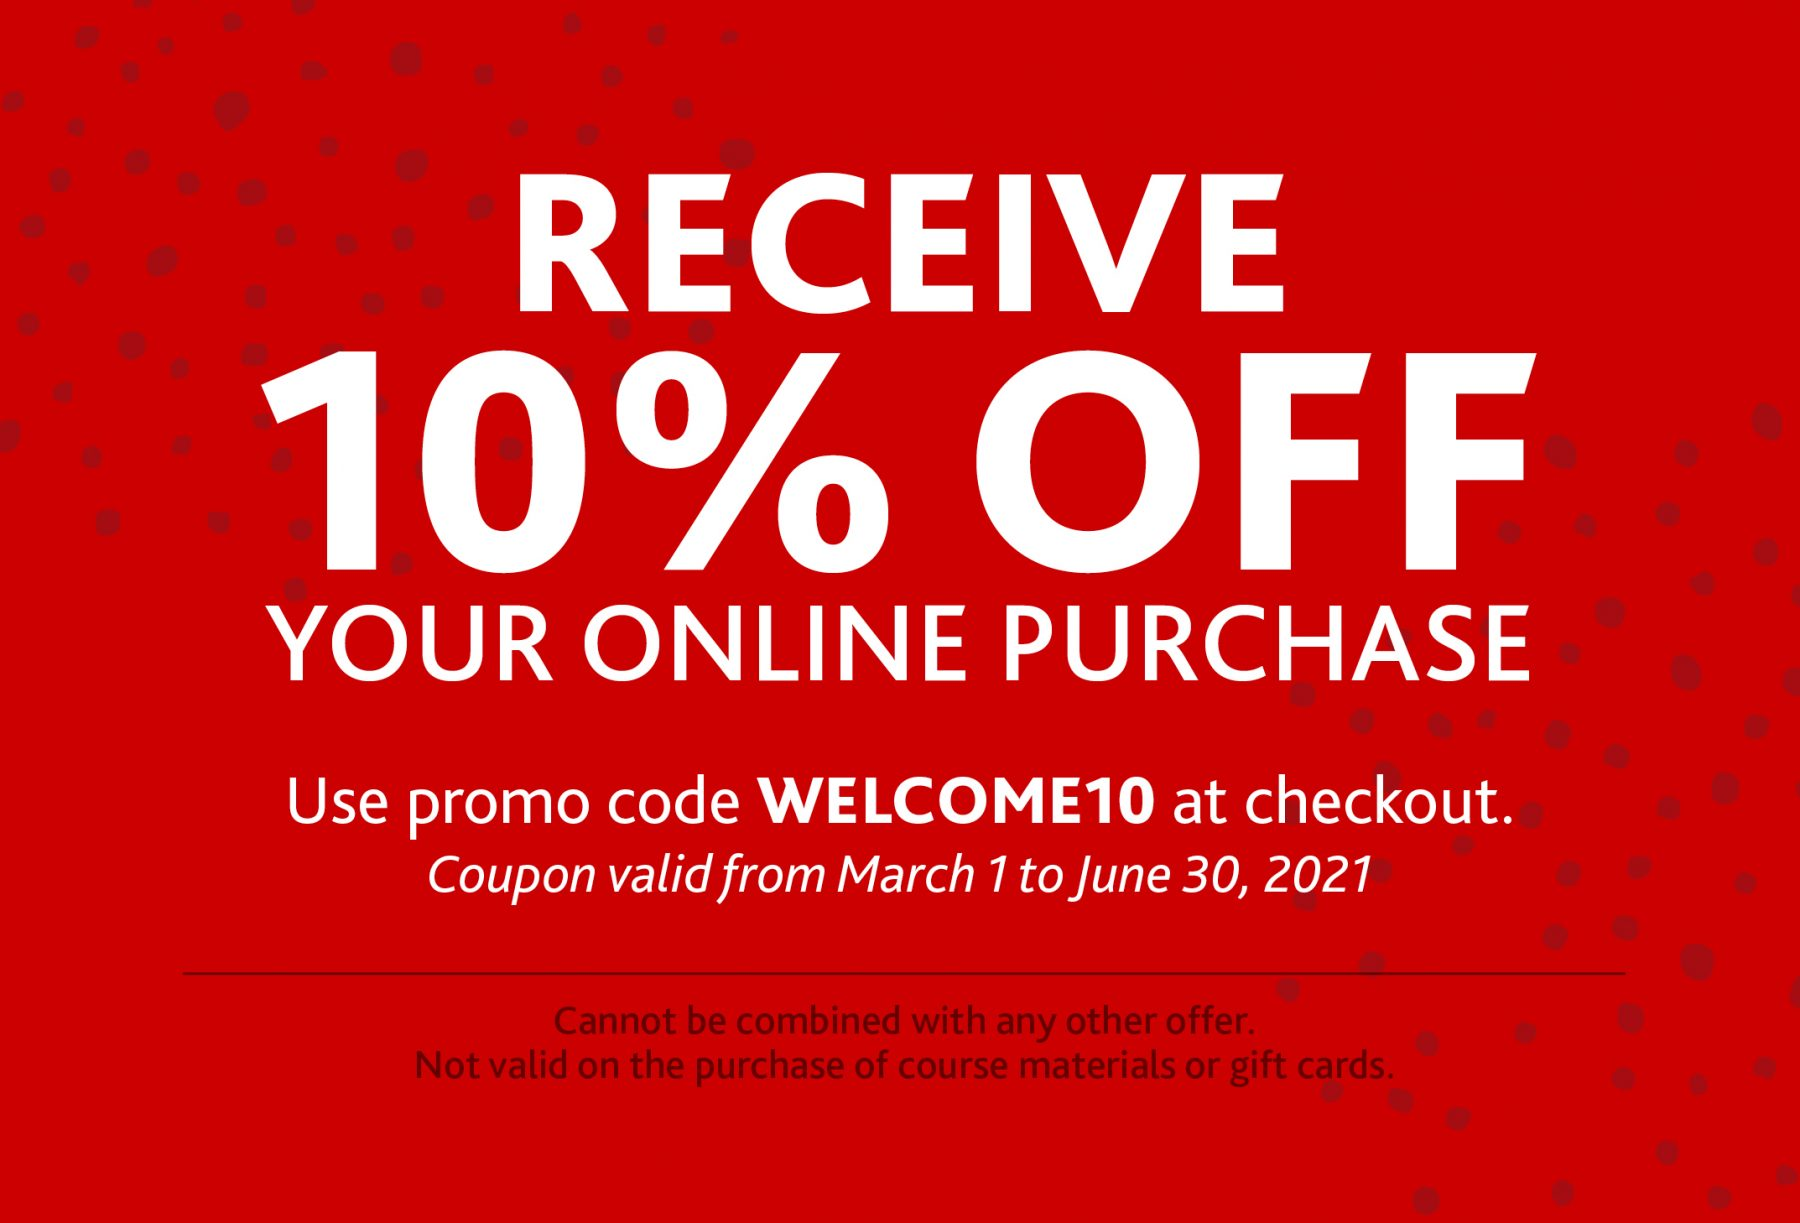 Receive 10% off your online purchase - use promo code WELCOME10 at checkout